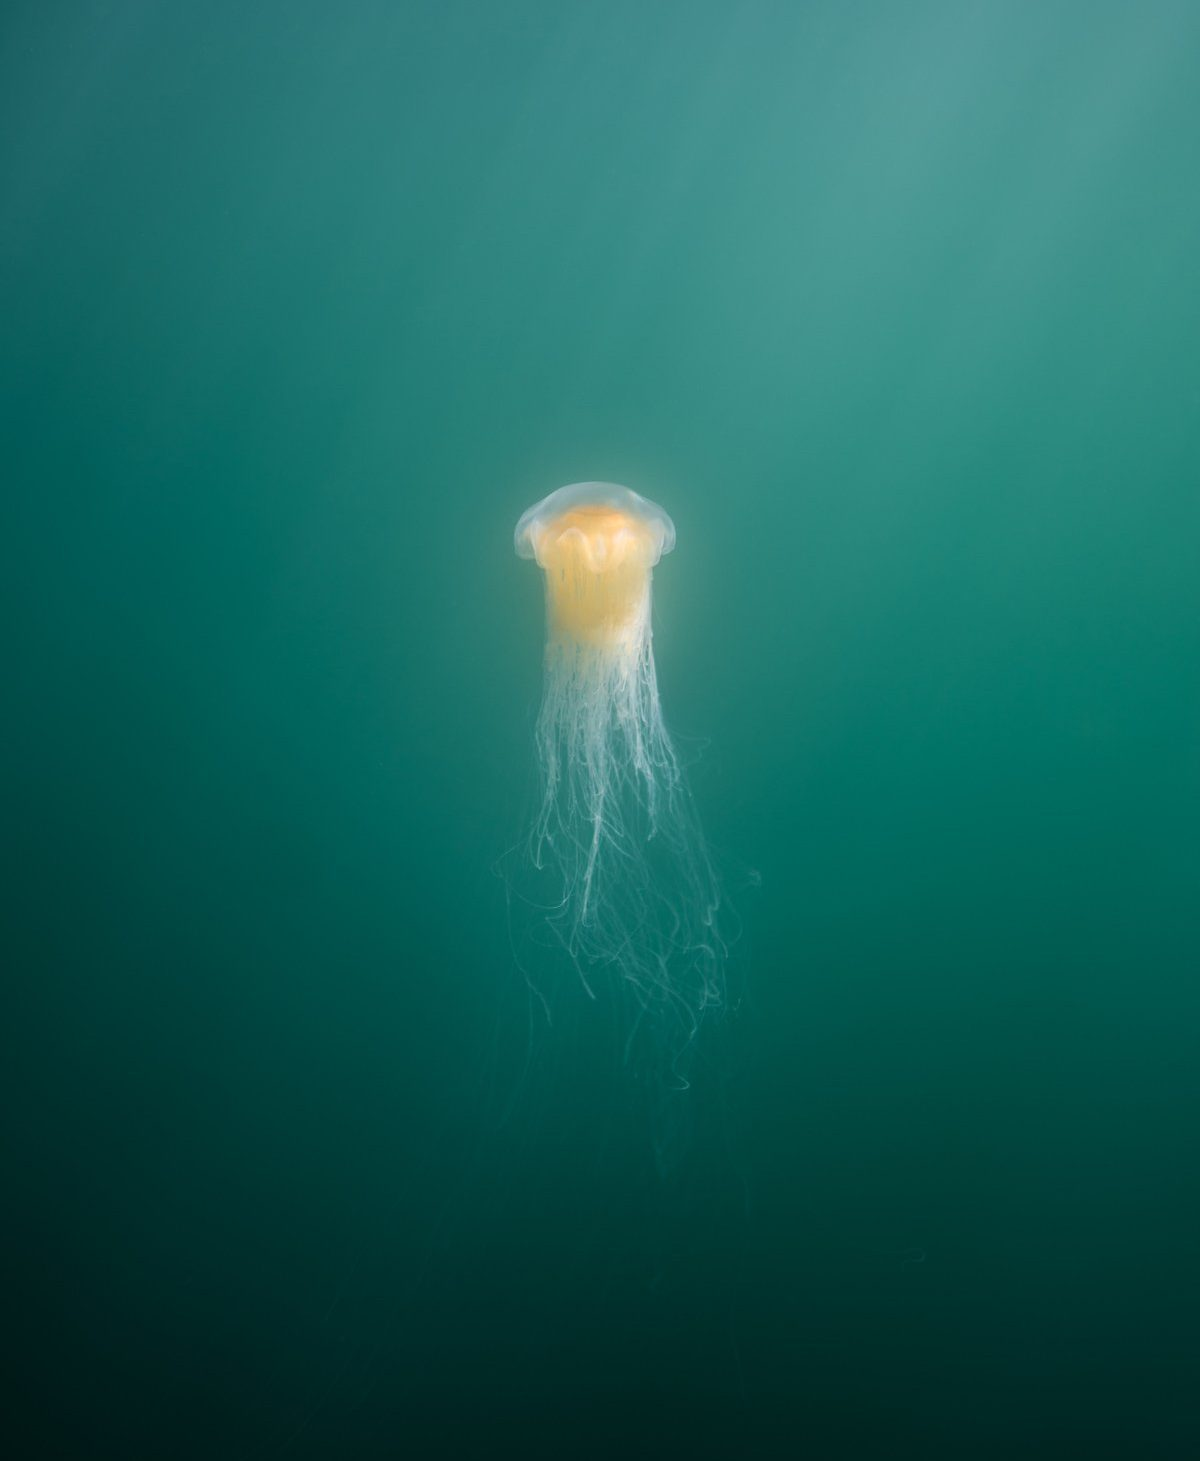 A jellyfish underwater